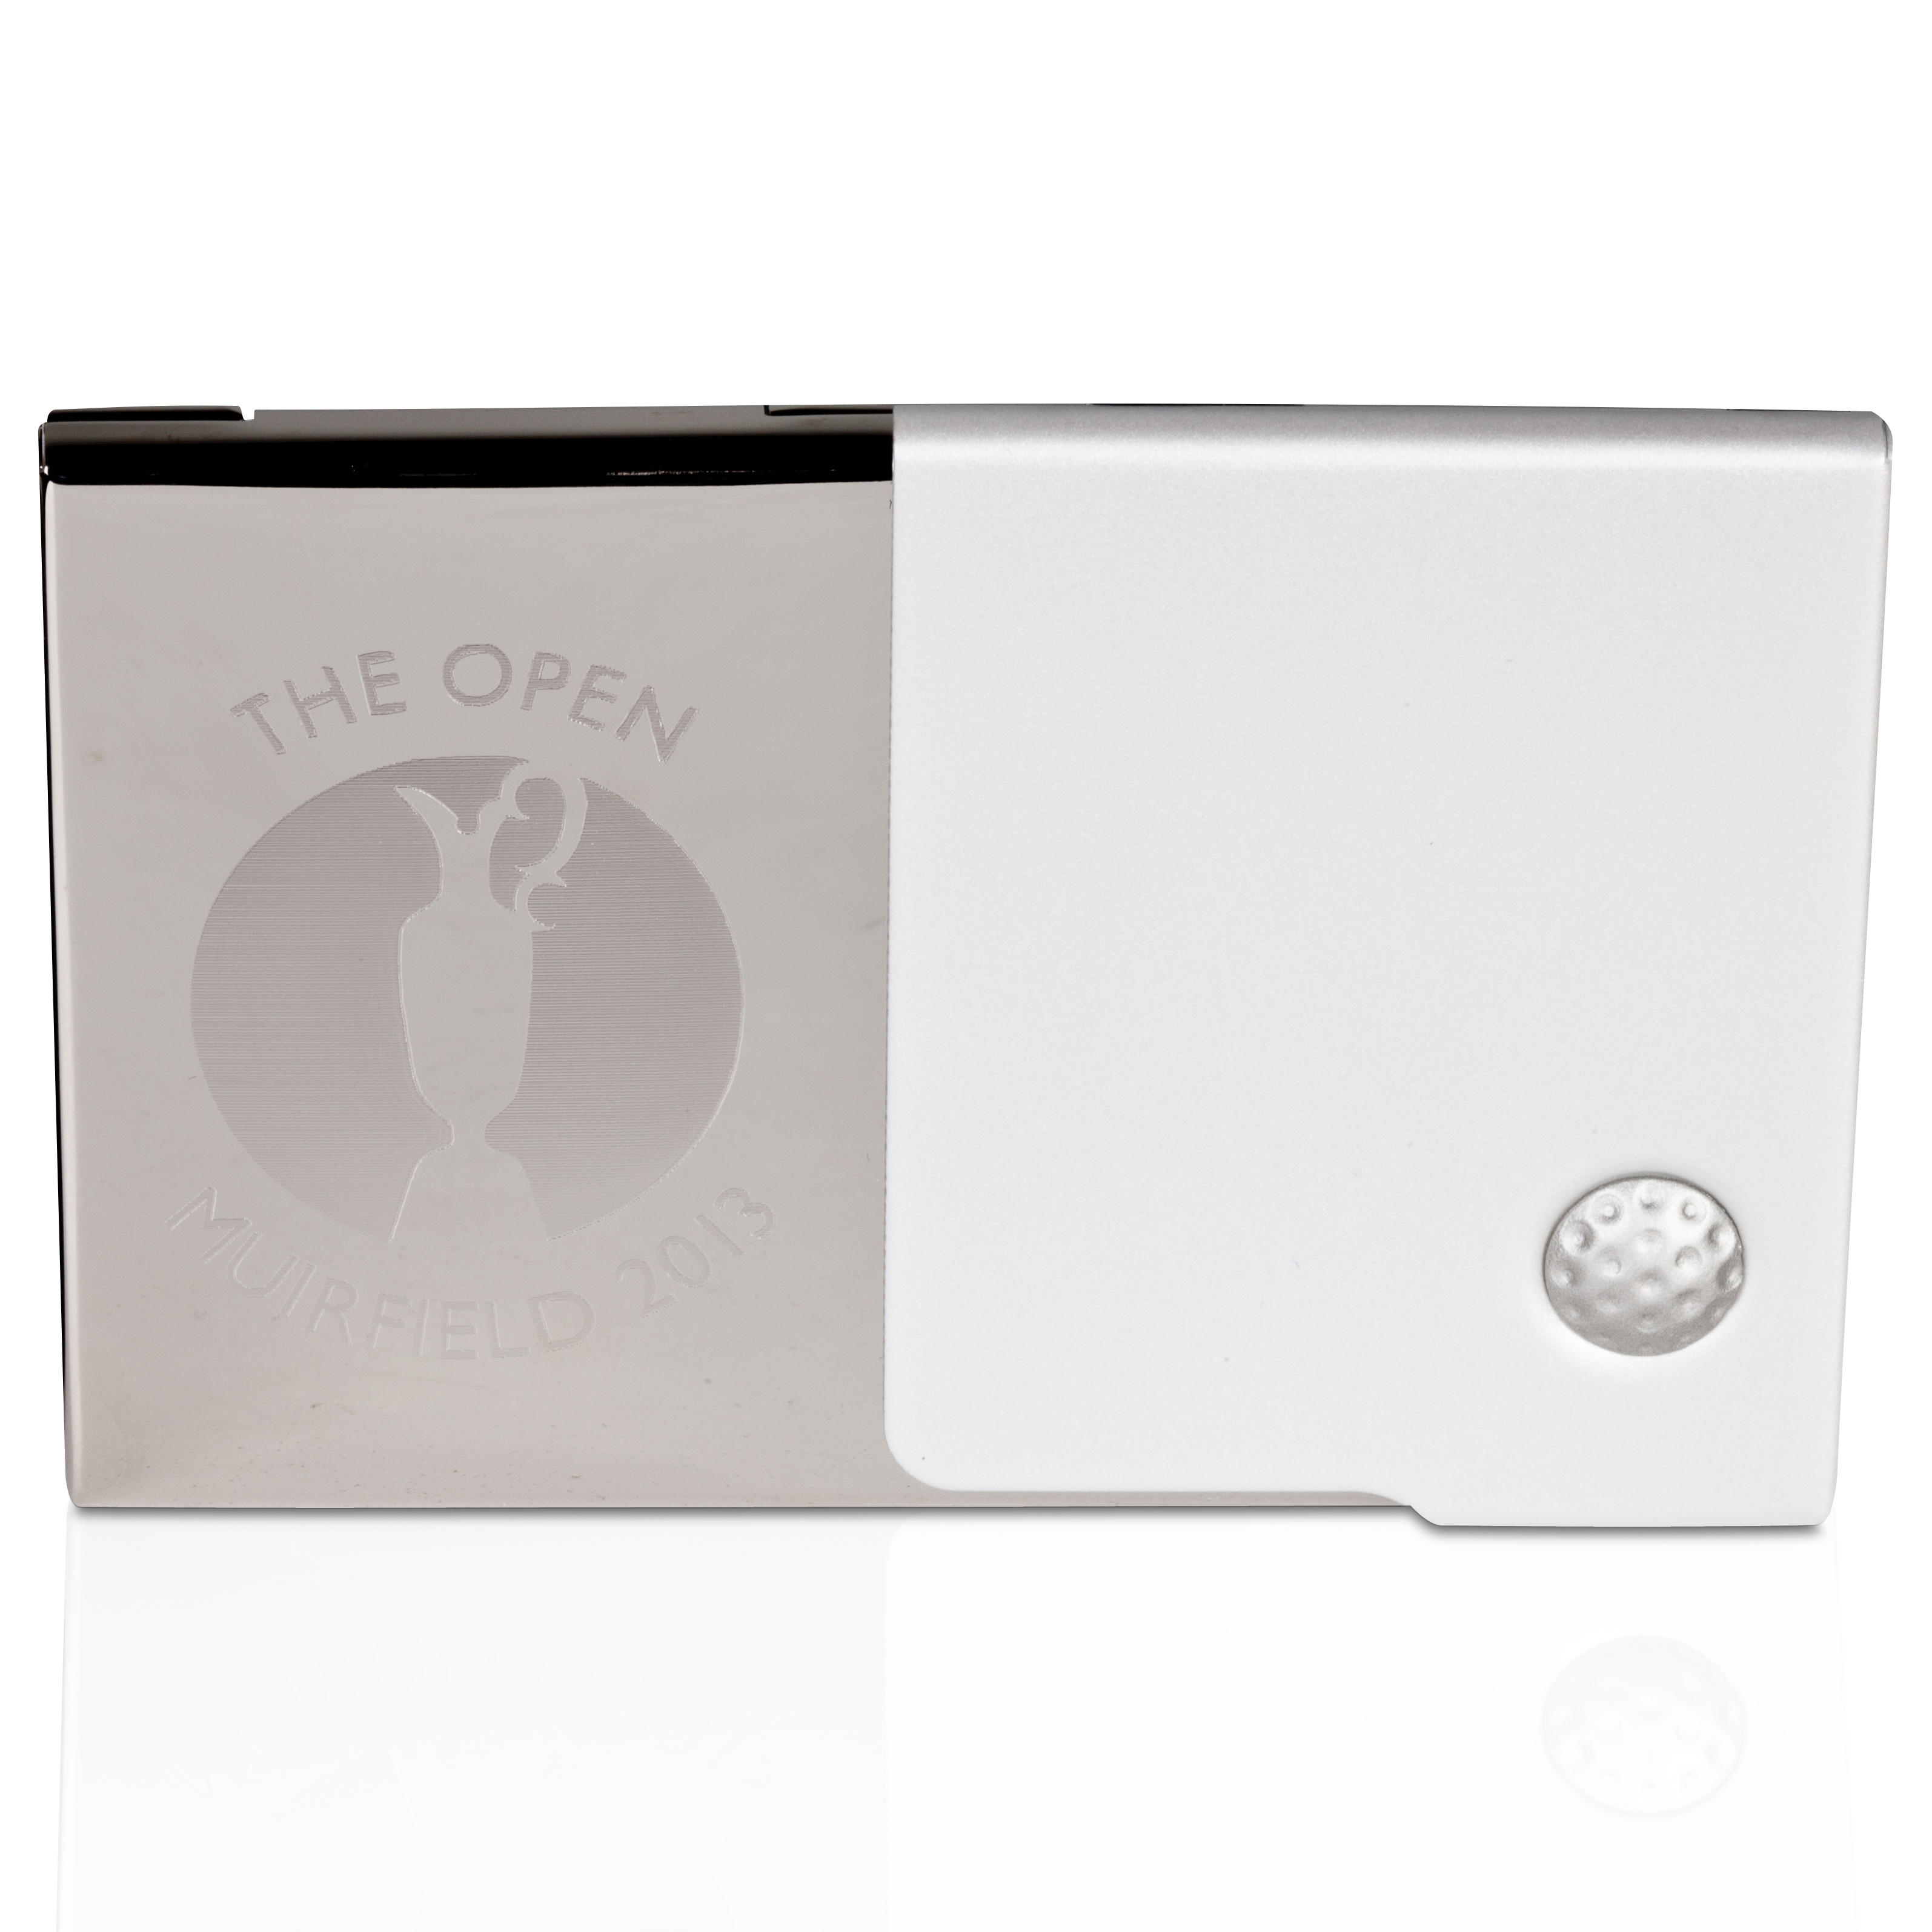 Open Golf Championship 2013 Muirfield Golf Business Card Case